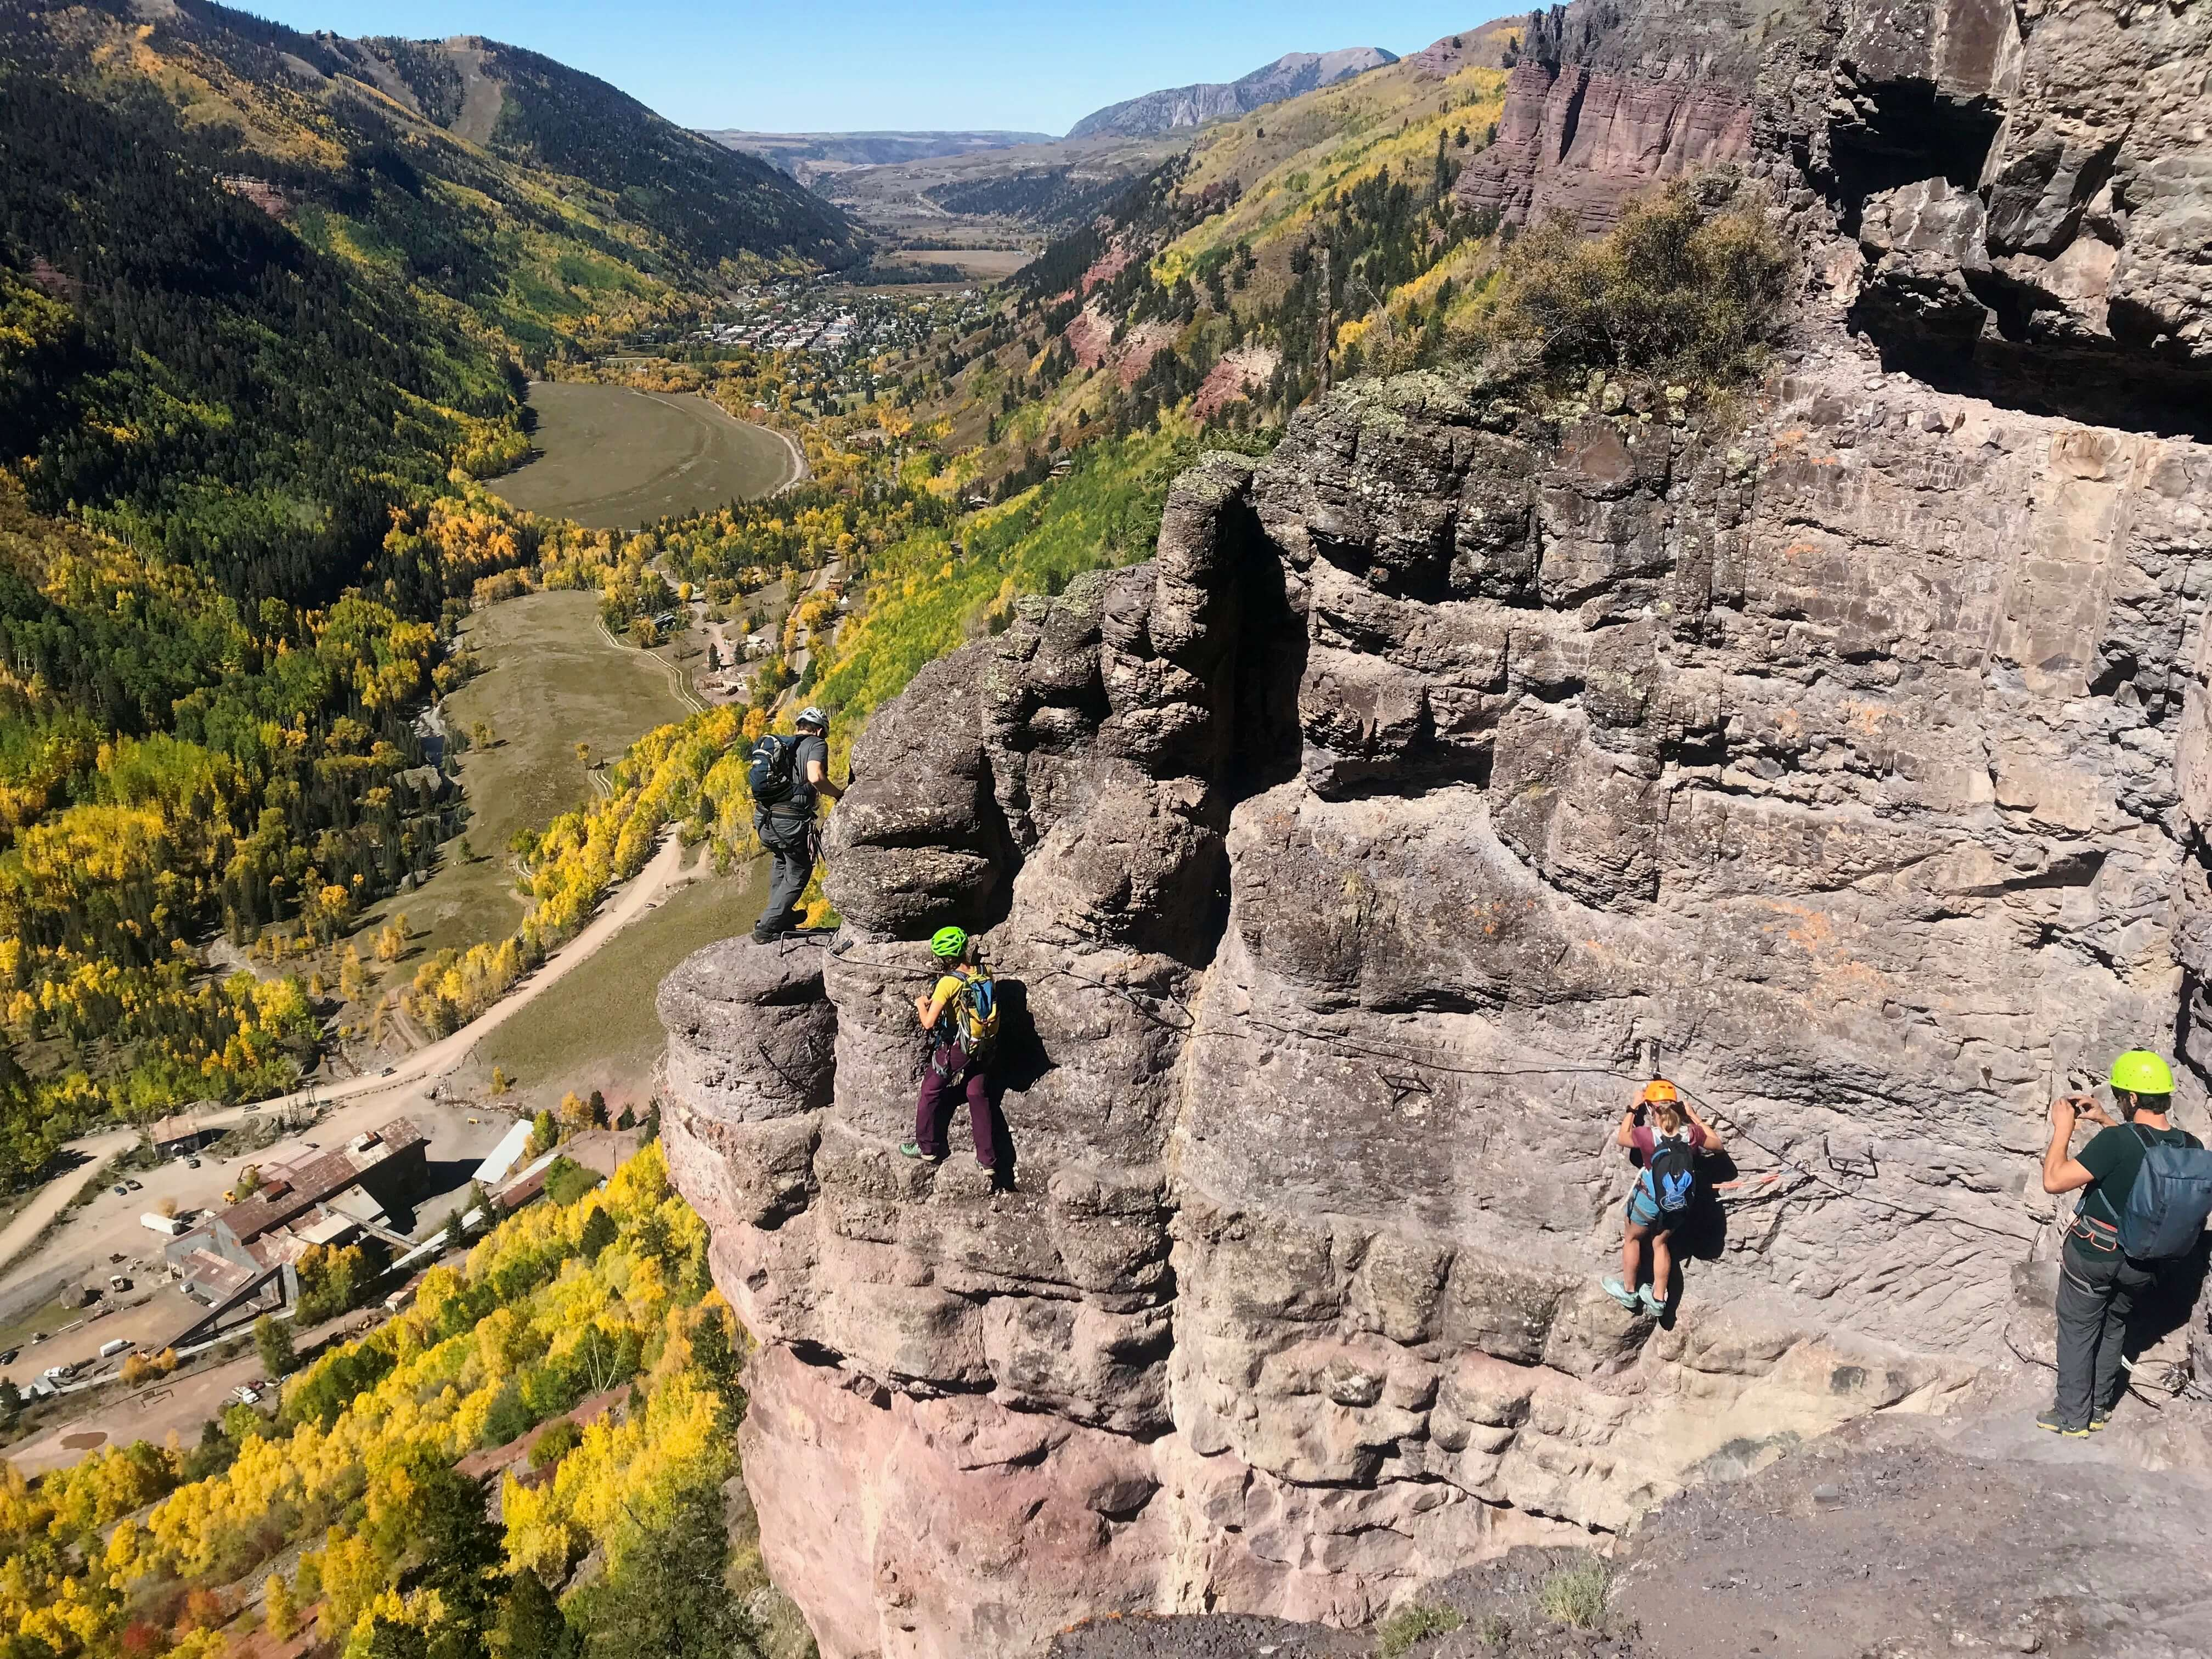 Via Ferrata, things to do in Telluride in October